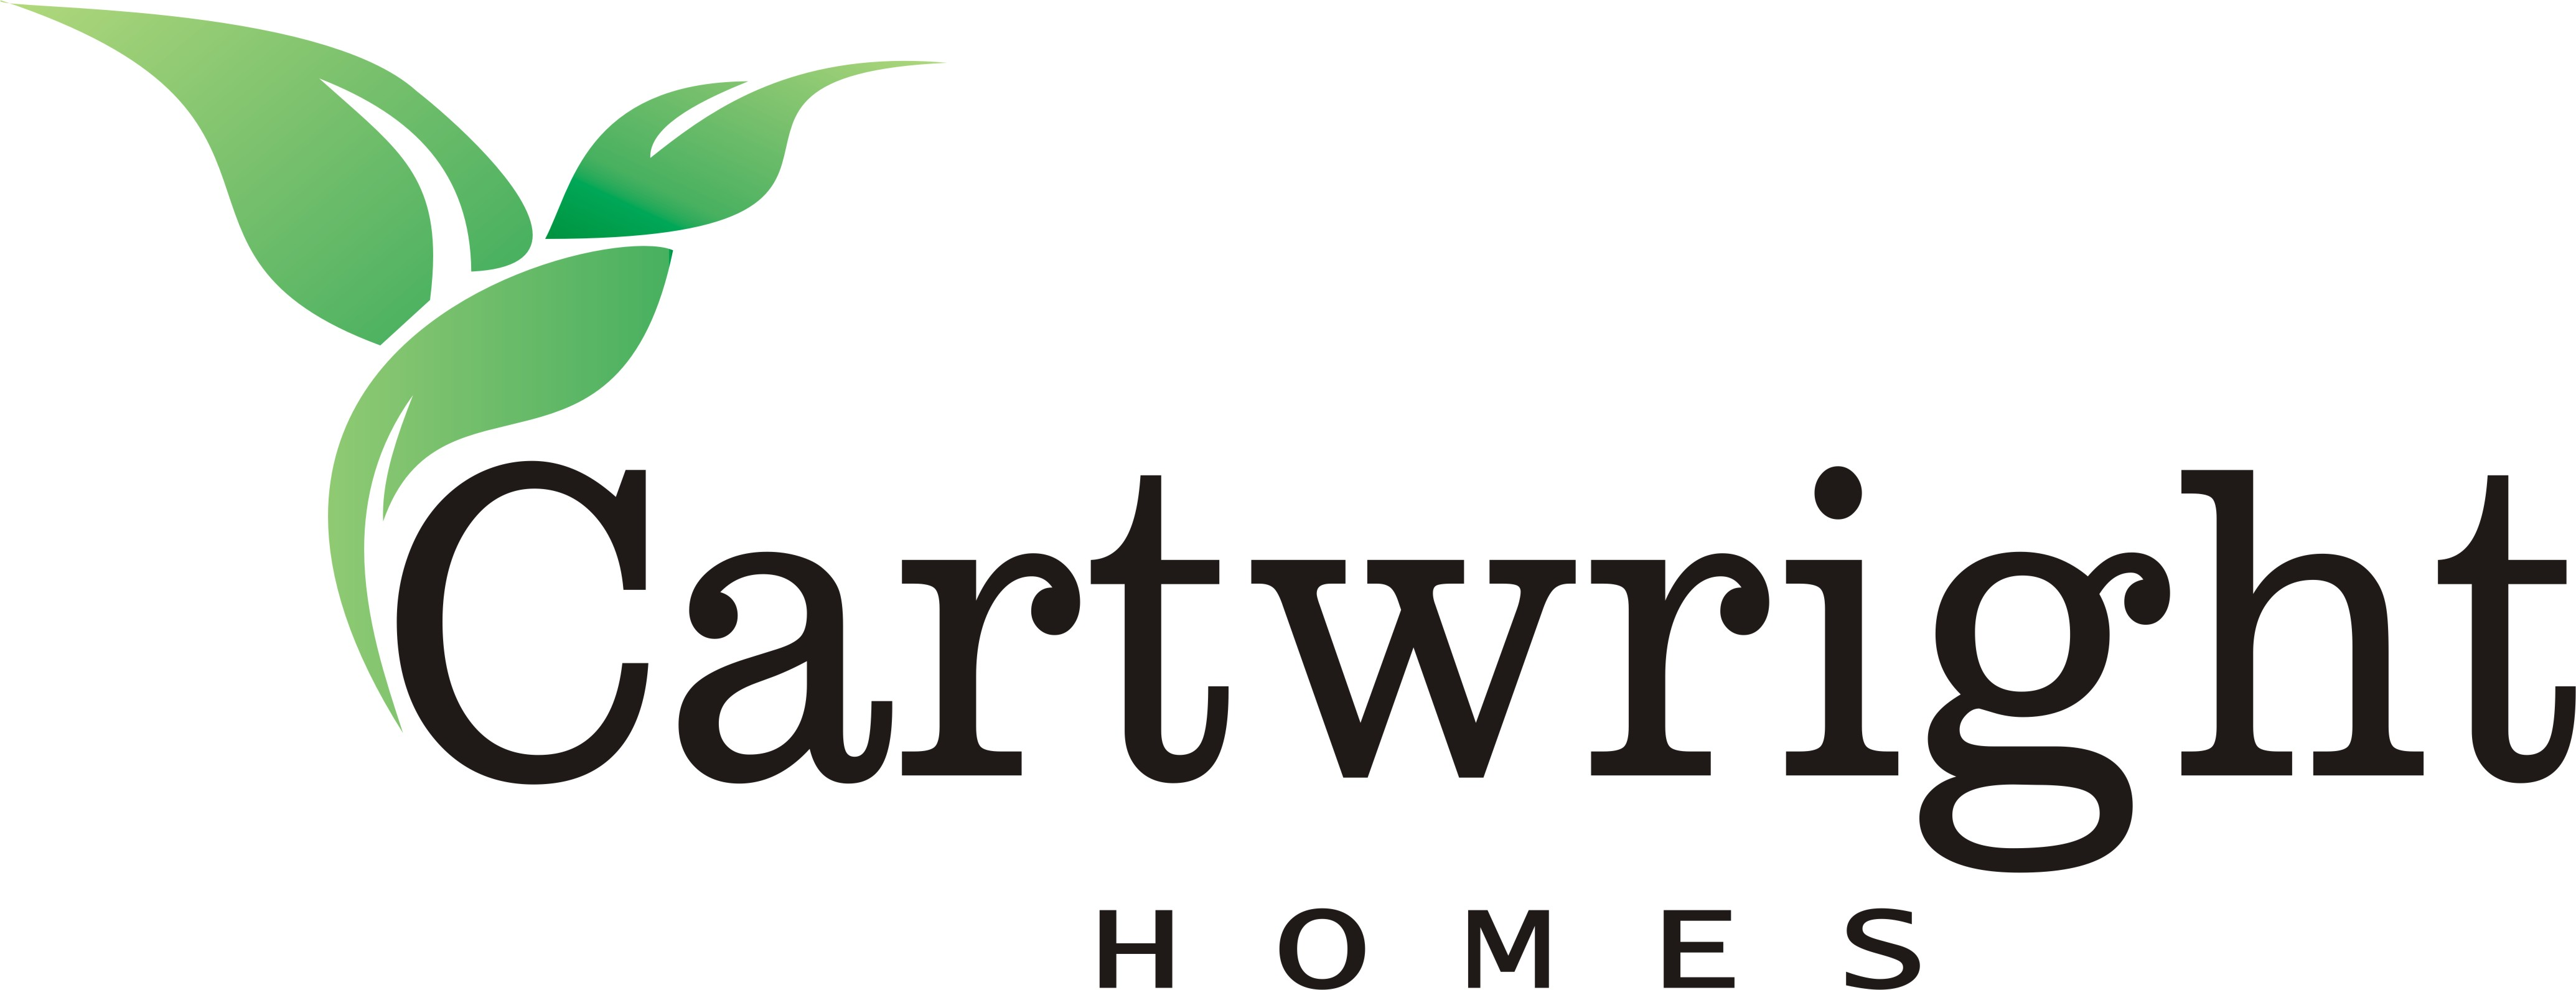 We would like to welcome Cartwright Homes to ContactBuilder.